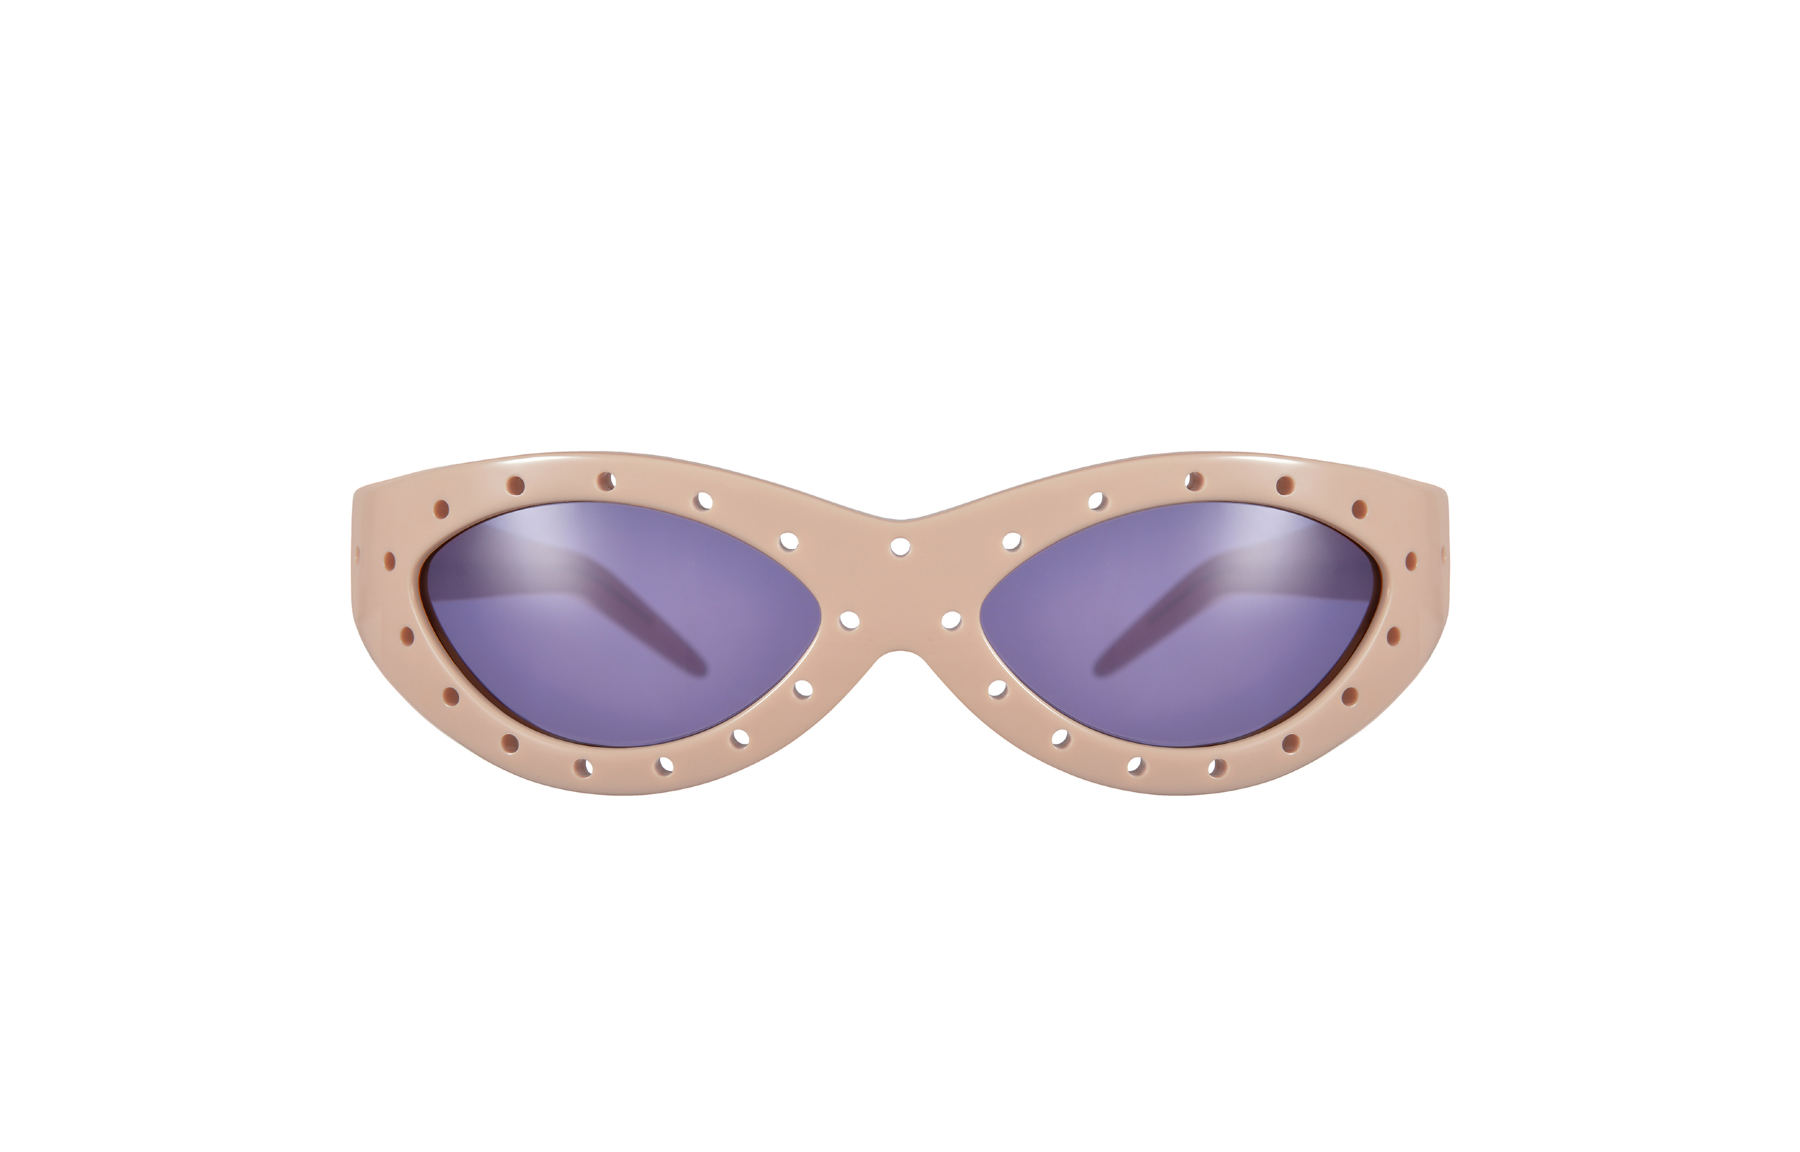 FAKBYFAK x Walter Van Beirendonck  Toy Glasses Model 1. Light brown with coloured pins Code: FBF-09-01-03